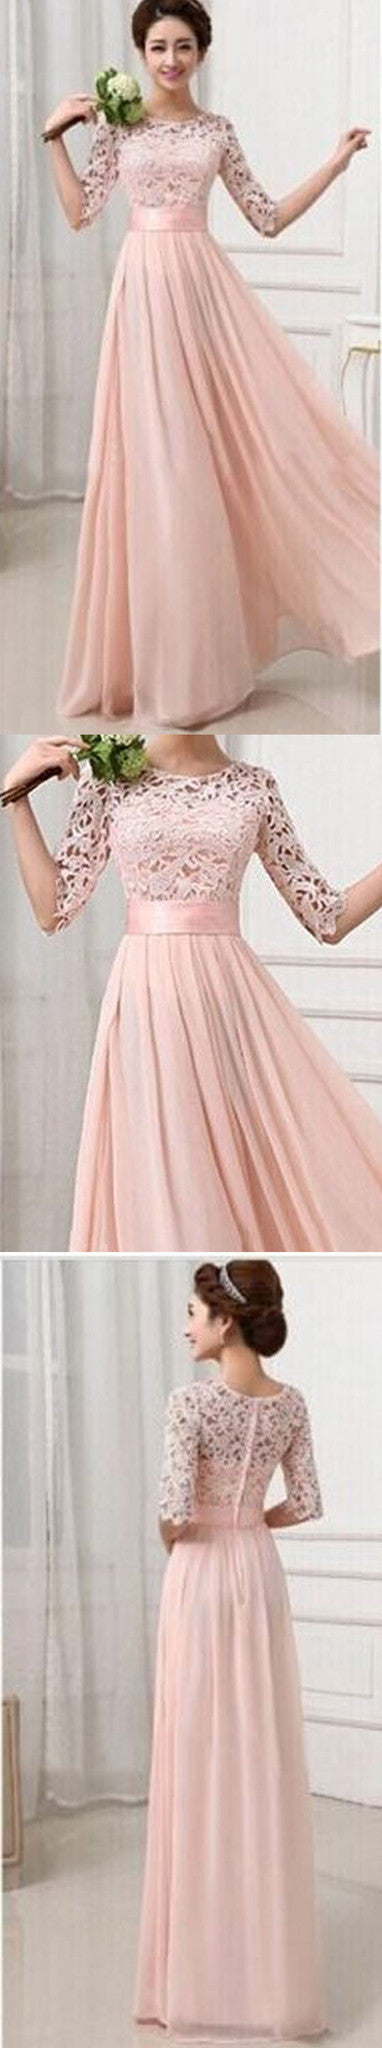 Blush Pink Junior Half Sleeve Top Seen-Through Lace Prom Bridesmaid Dresses, BG51322 - Bubble Gown